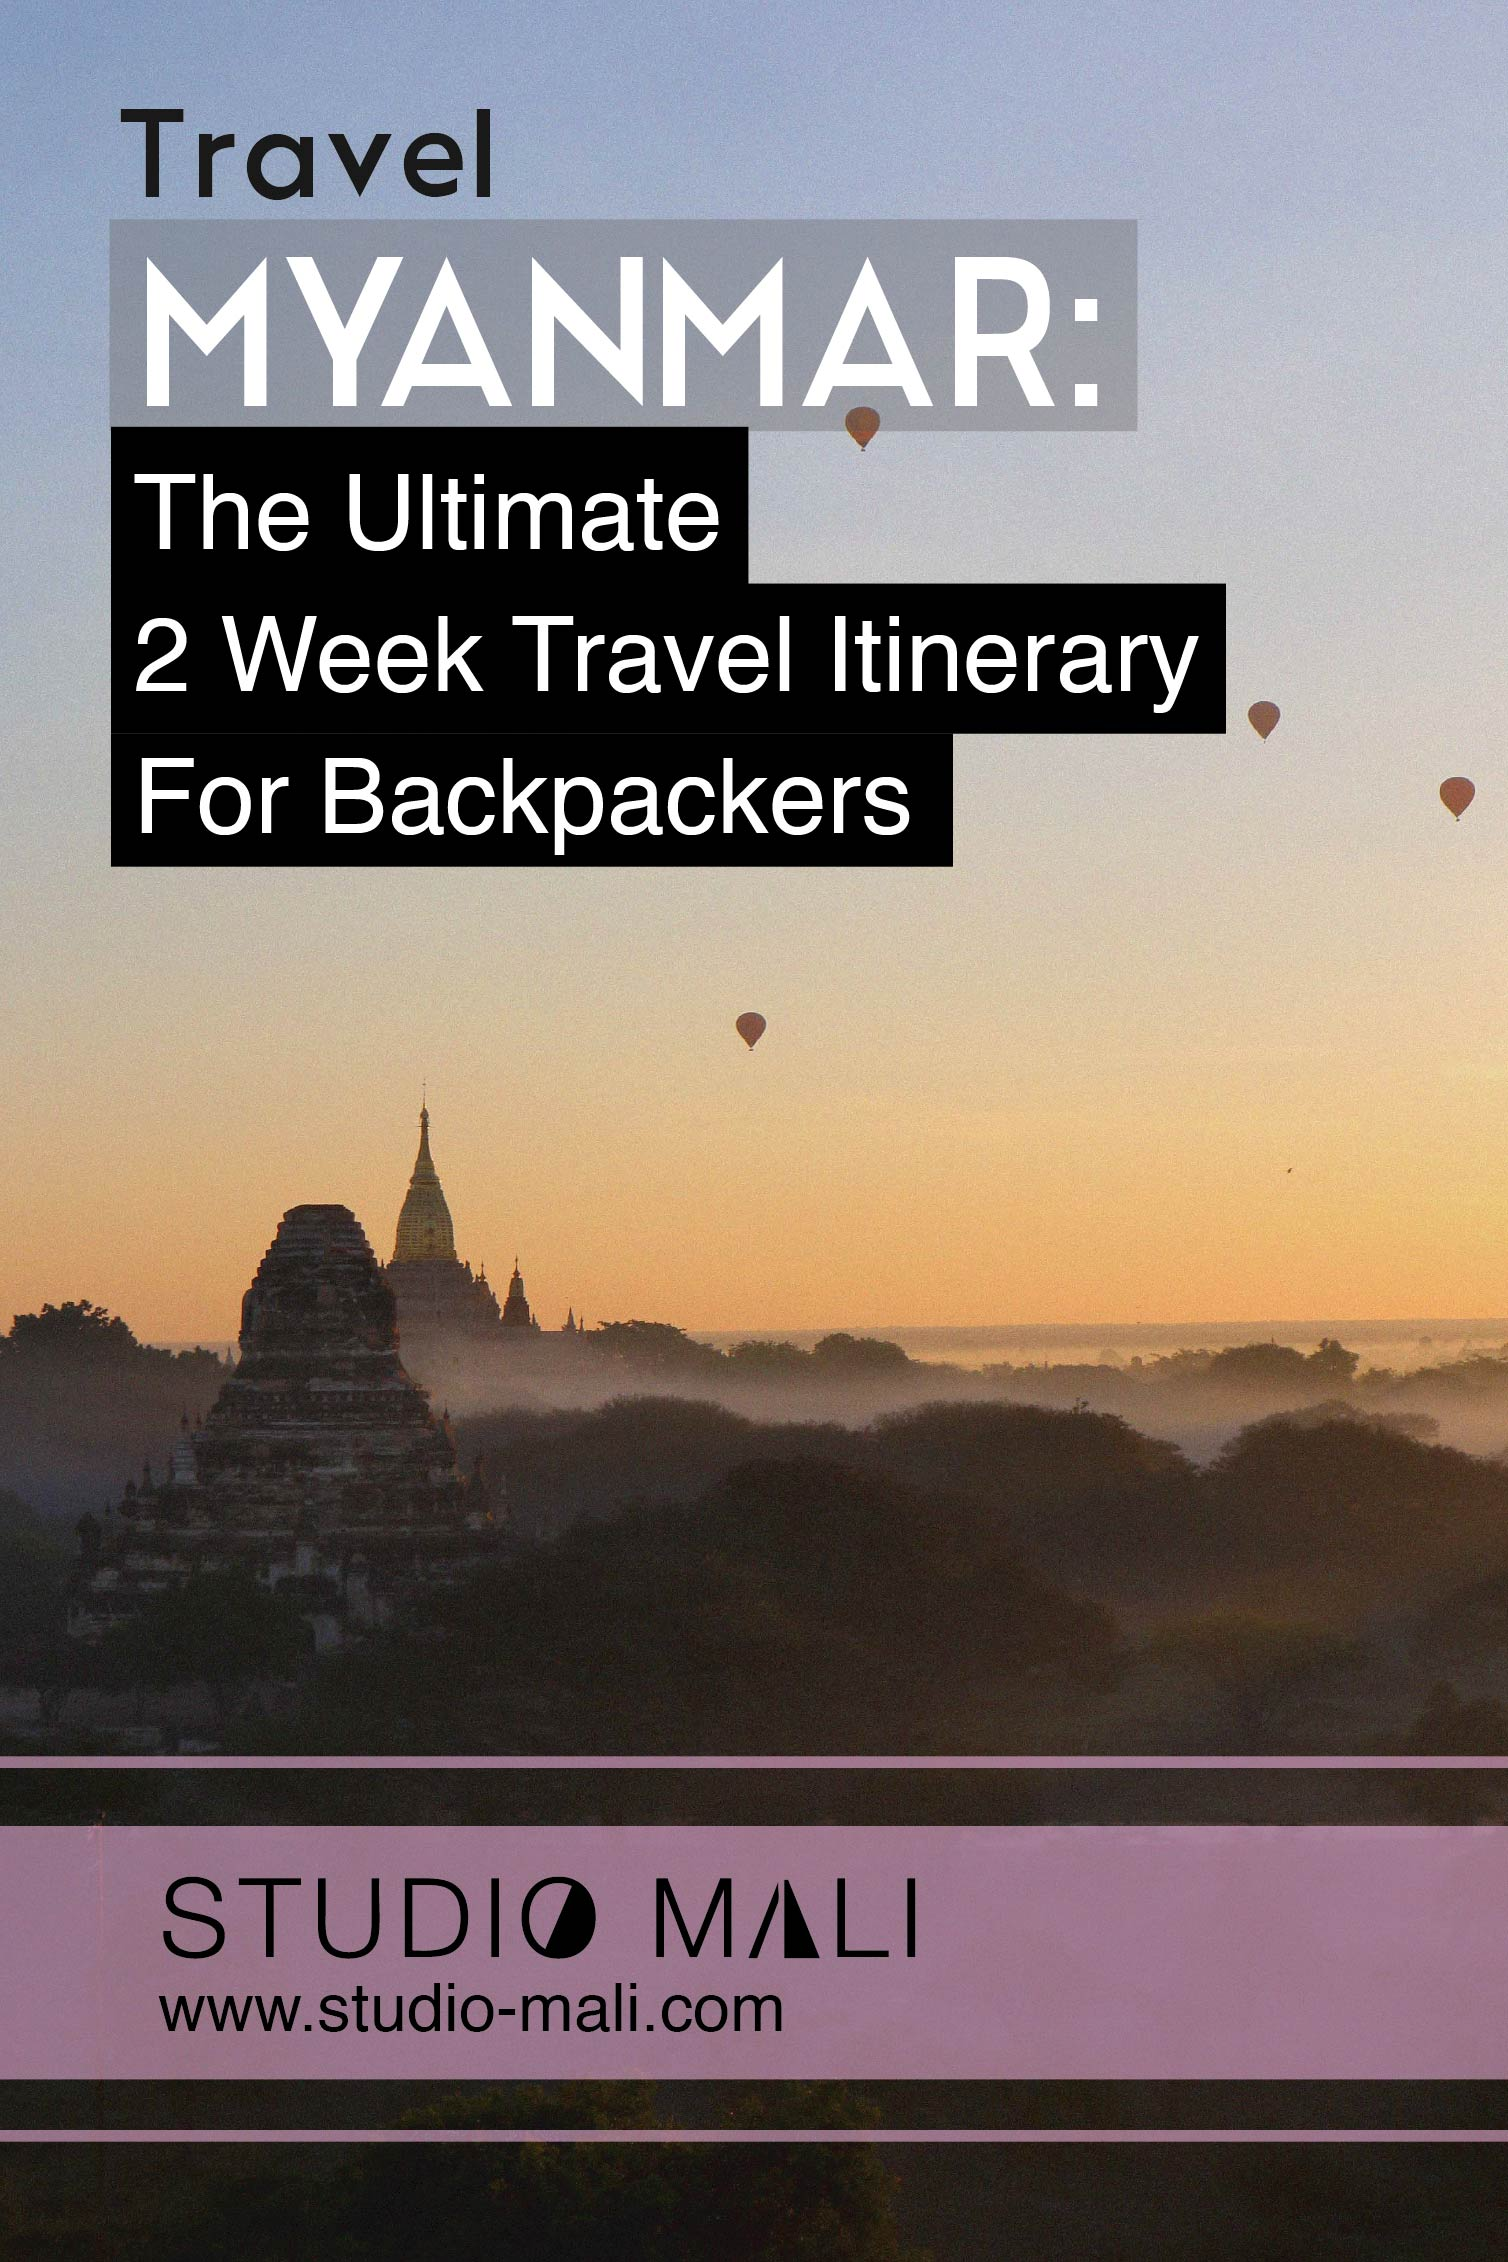 Myanmar: The Ultimate 2 Week Travel Itinerary For Backpackers, By Studio Mali